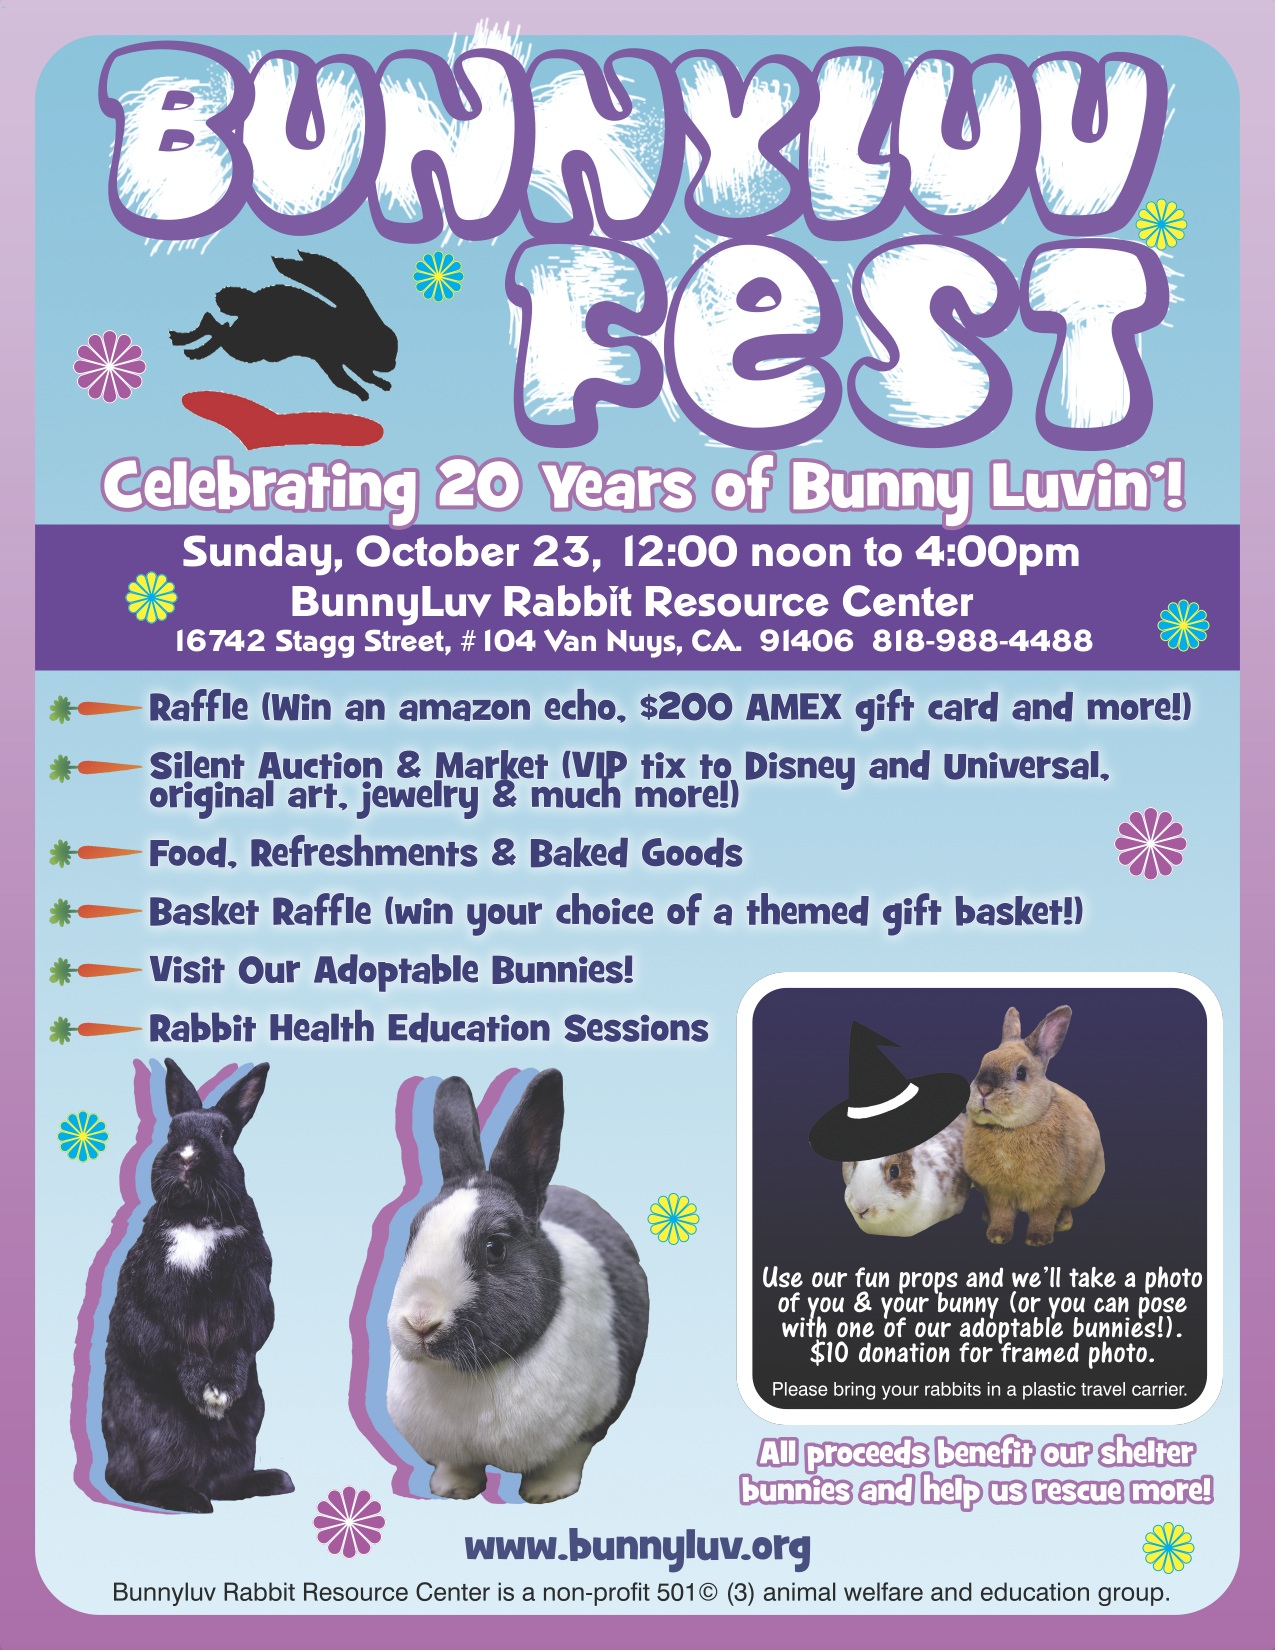 BunnyLuv, the LA Valley Chapter of HRS, is Celebrating!